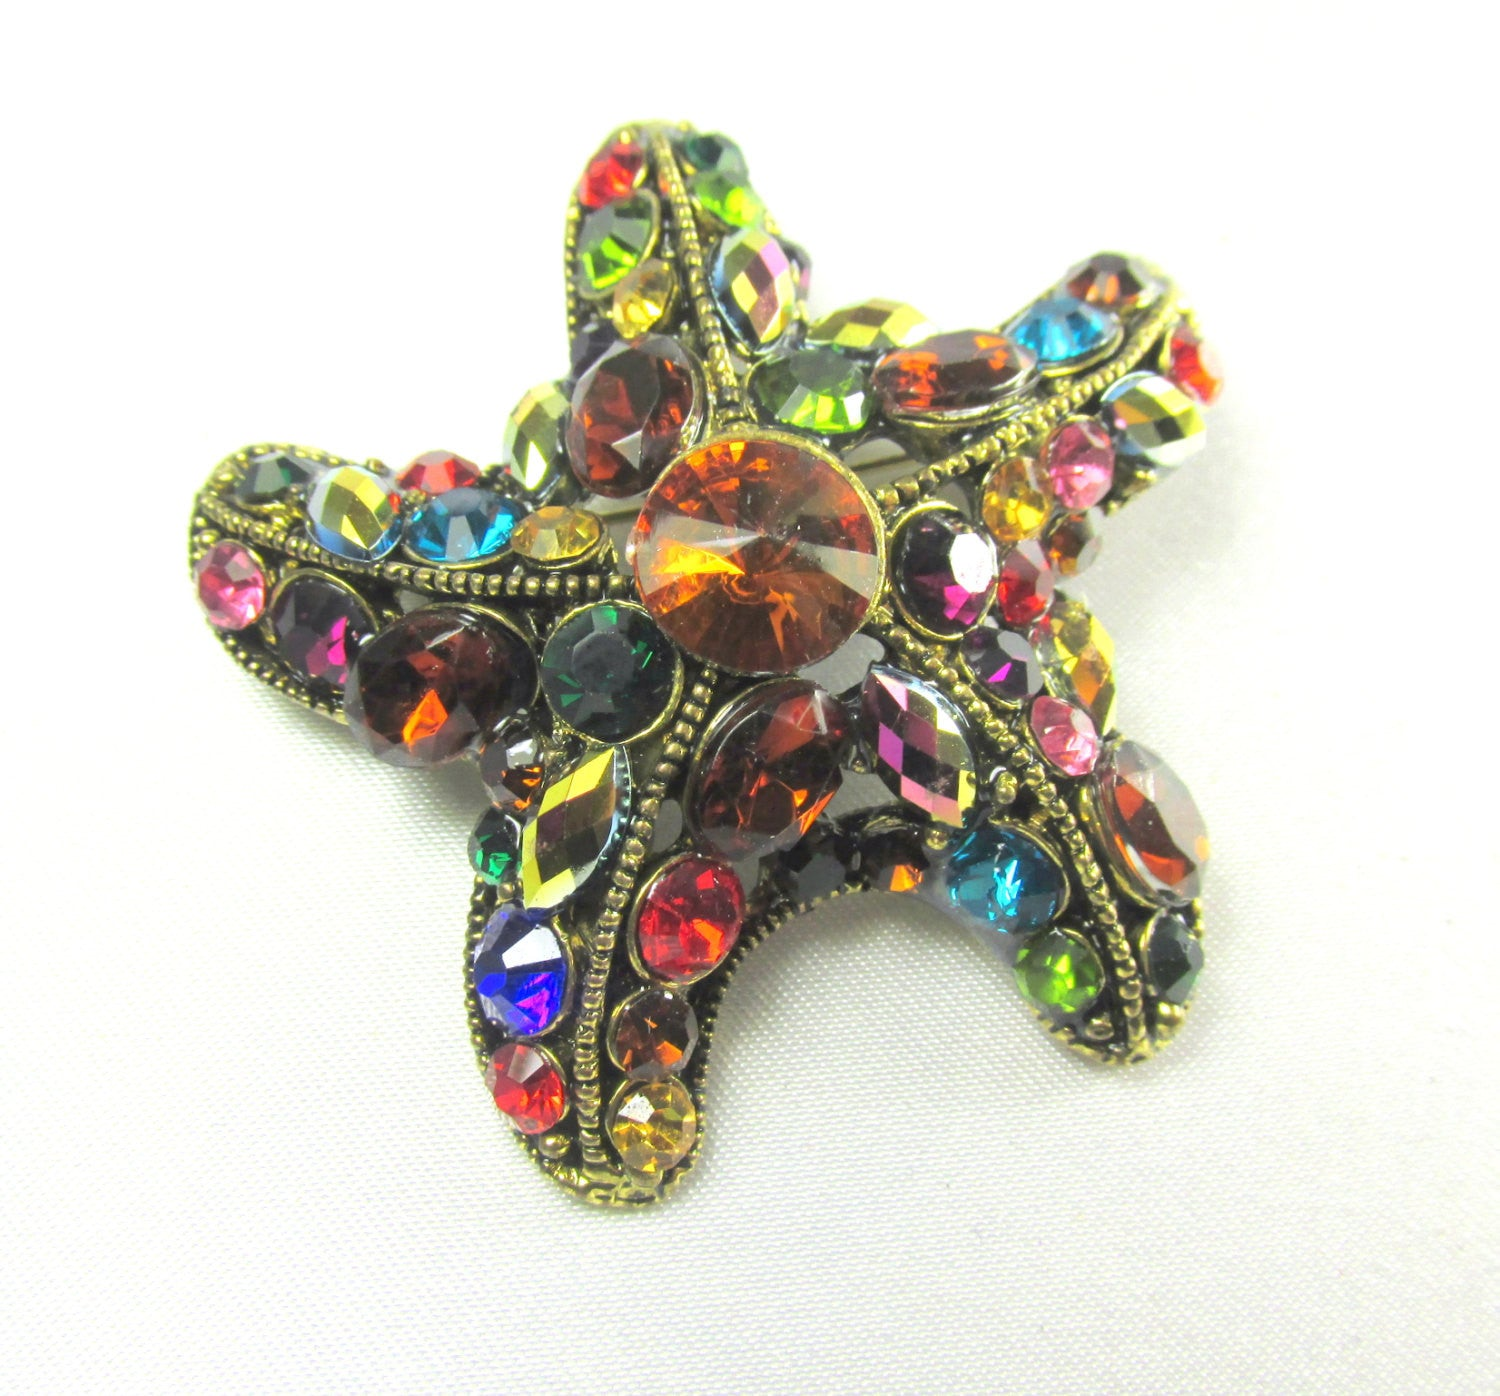 Multicolor Starfish Brooch in Antique Gold - Odyssey Cache - 1